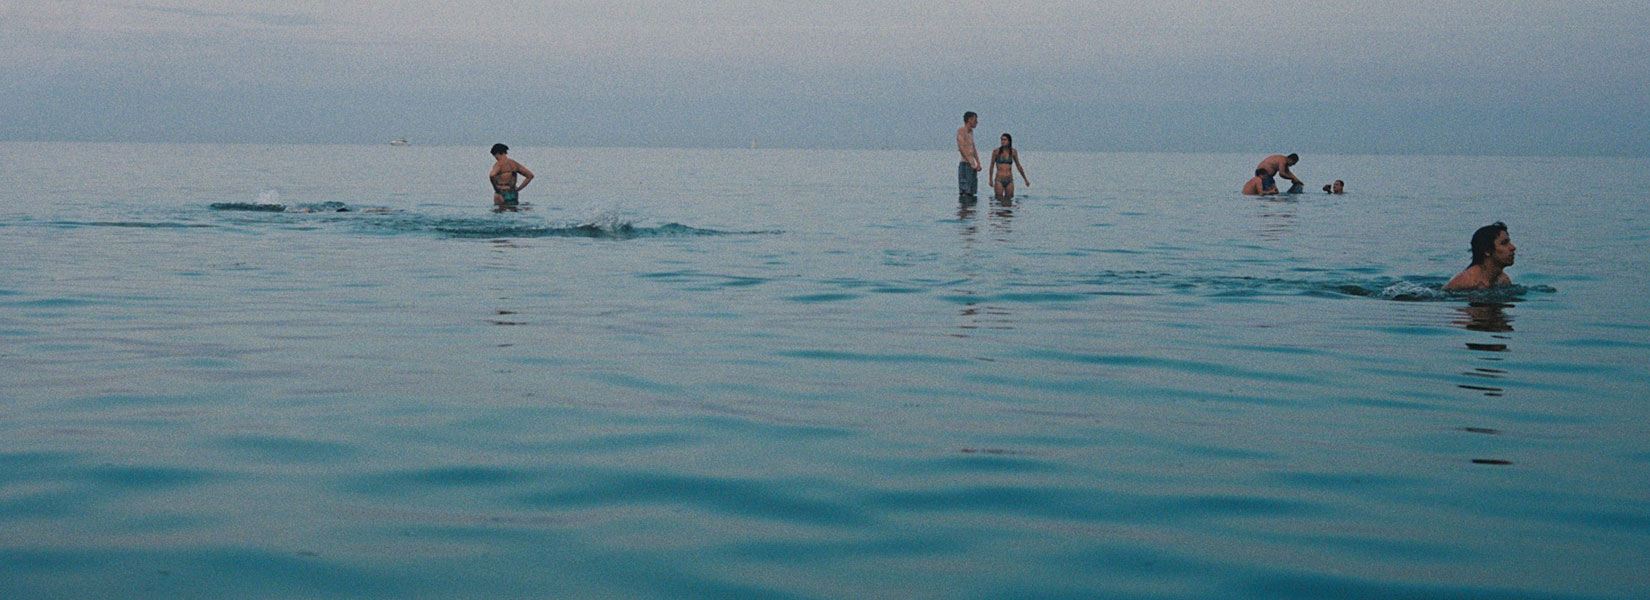 A photo of people bathing in calm, blue water